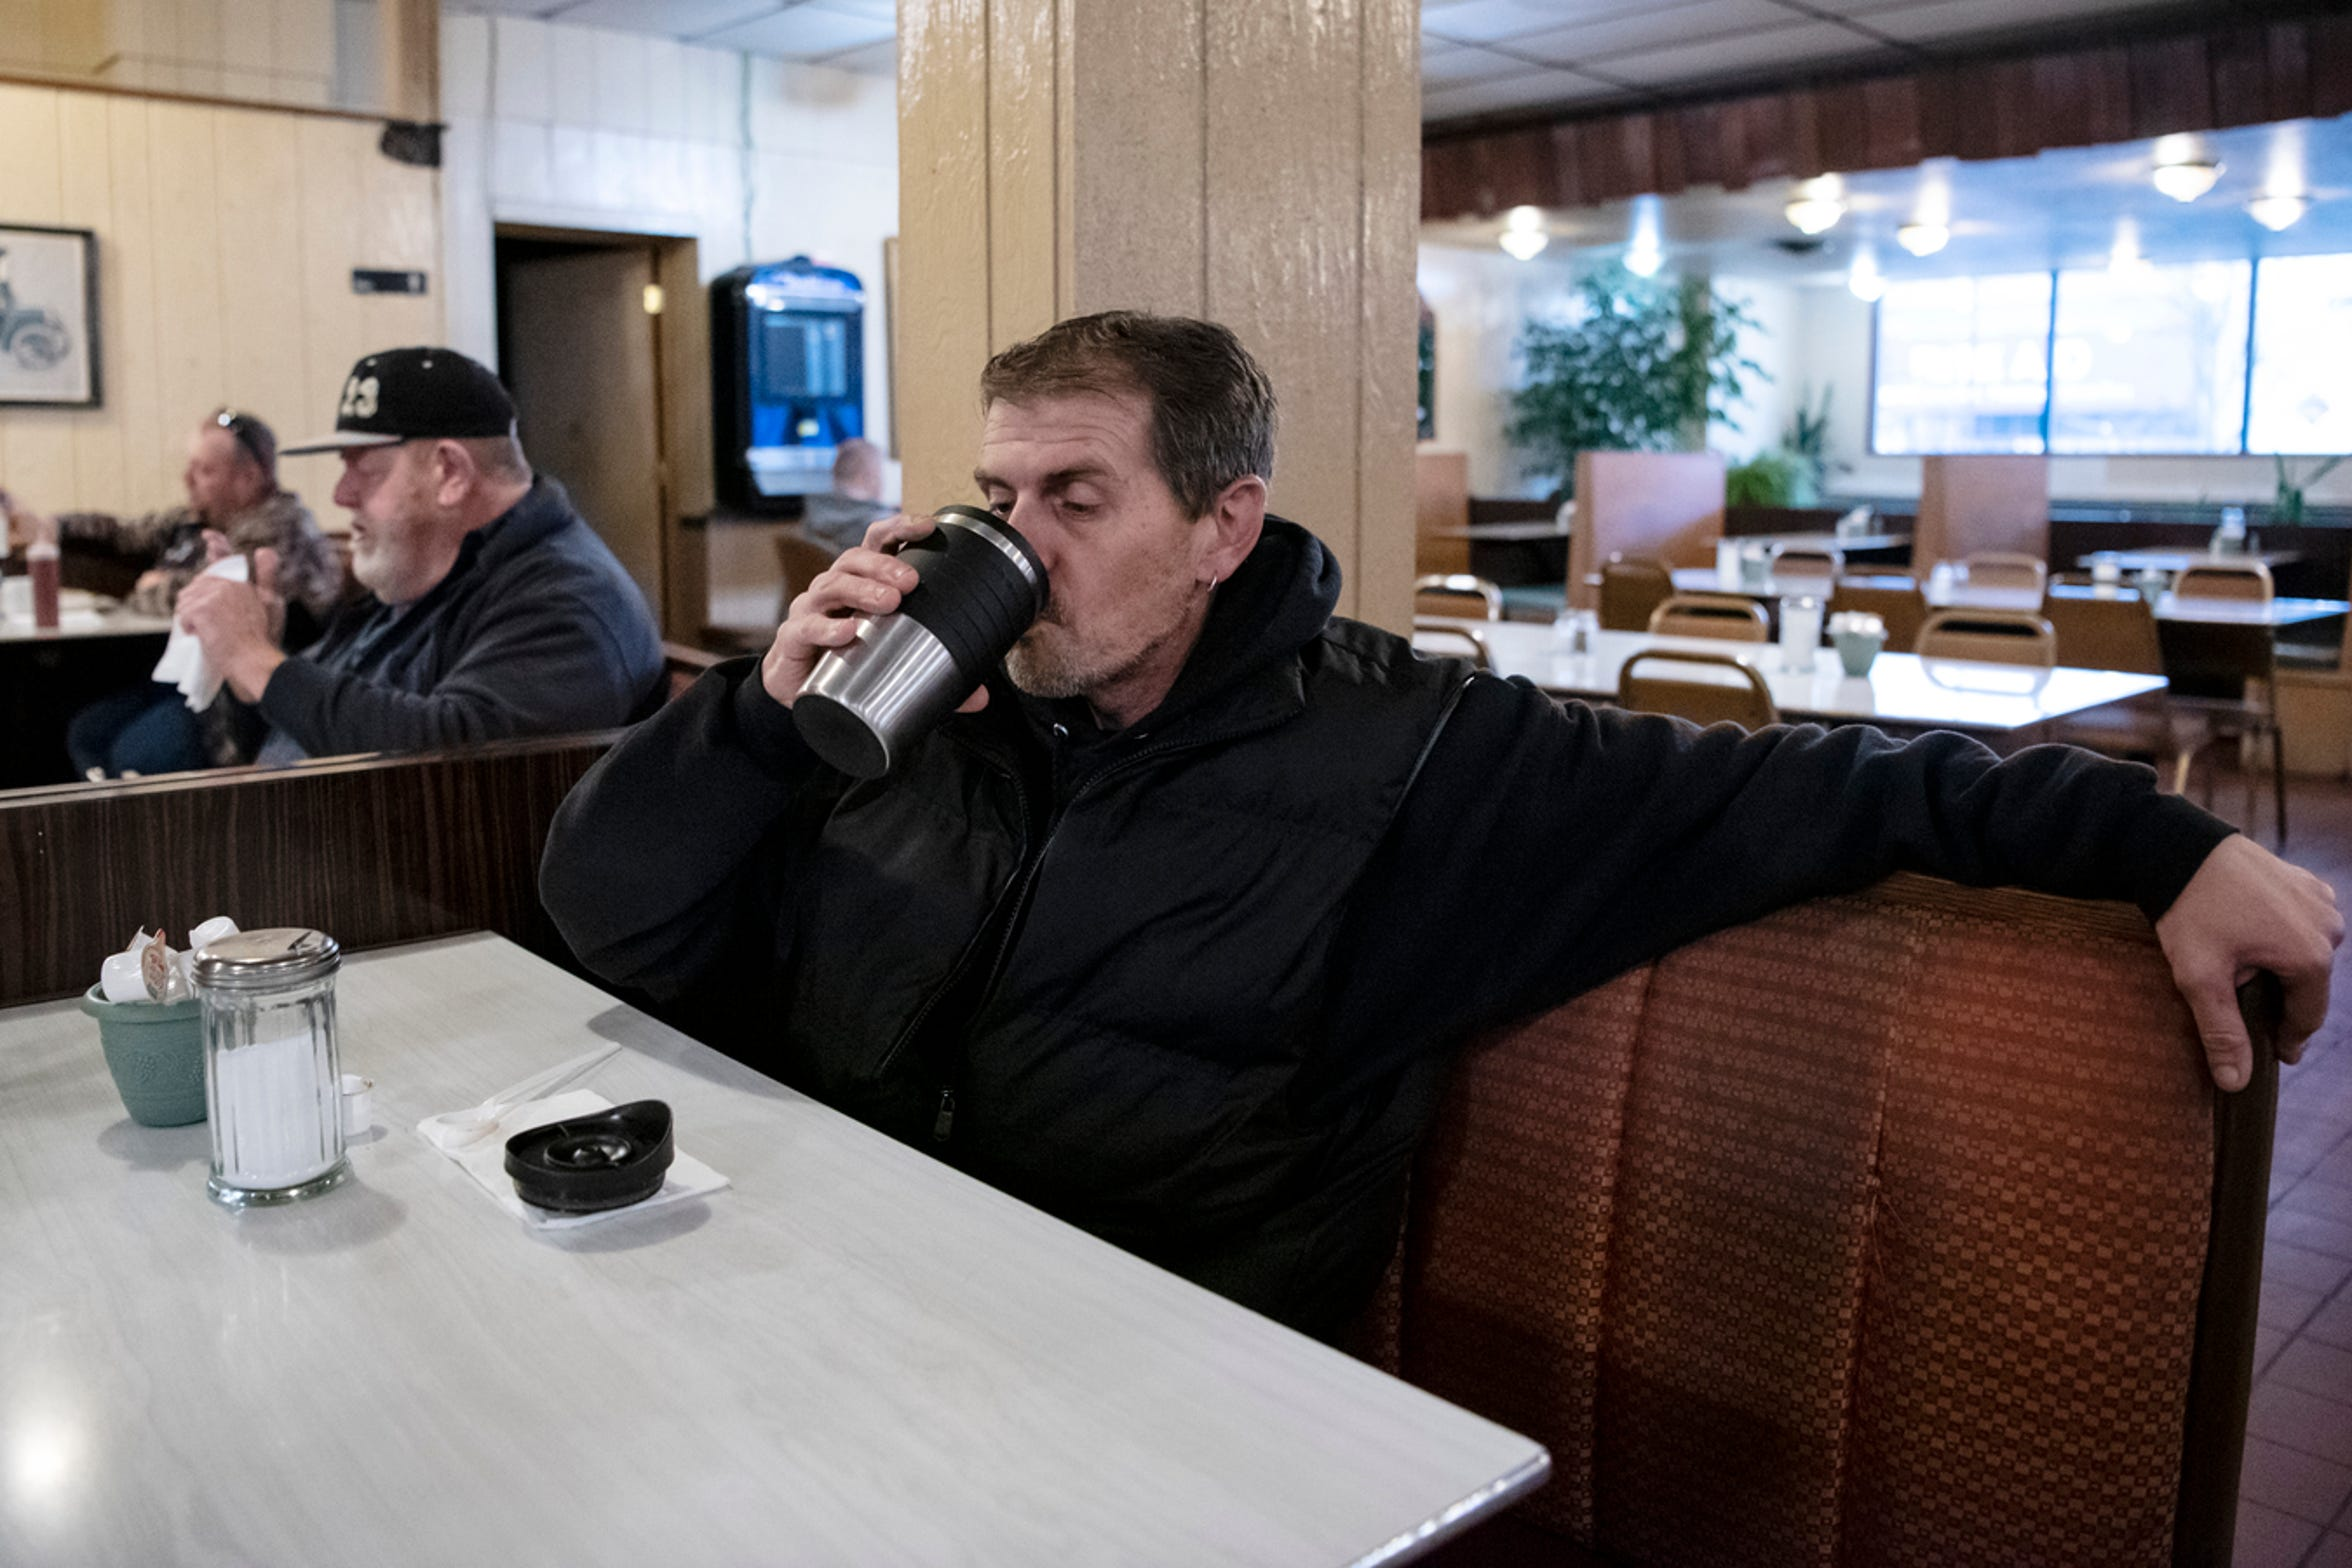 William Crapo from Battle Creek drinks coffee on Wednesday, Nov. 20, 2019 at Speed's Koffee Shop in Battle Creek, Mich. Crapo has been coming to Speed's for 30 years.